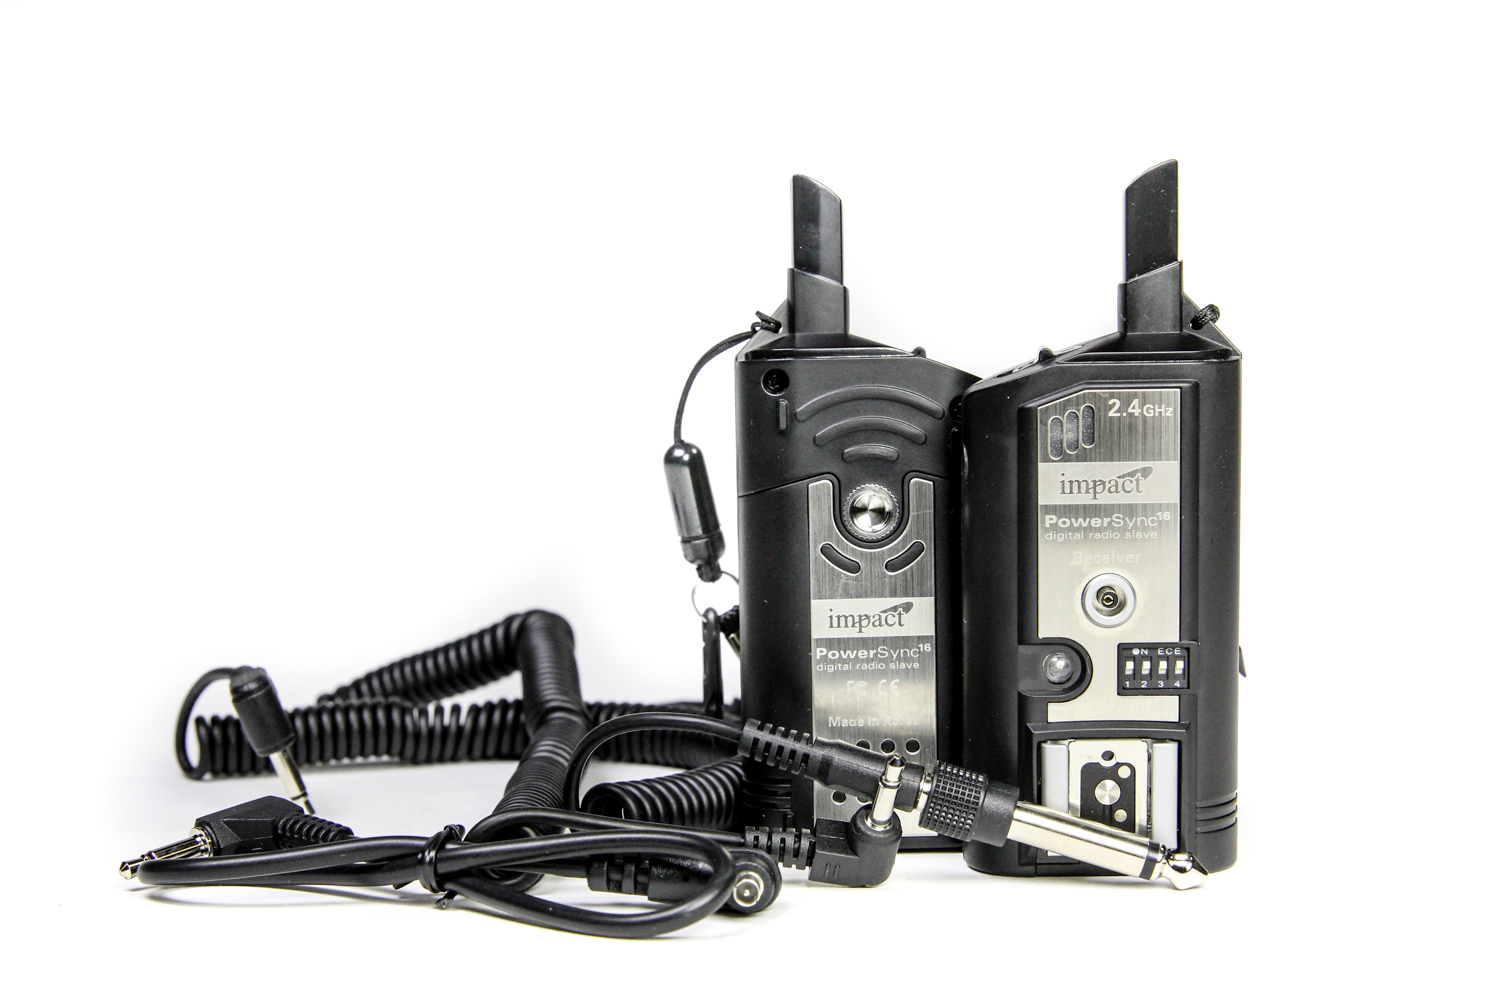 Image for product Impact-PowerSync16-DC-Radio-Slave-System